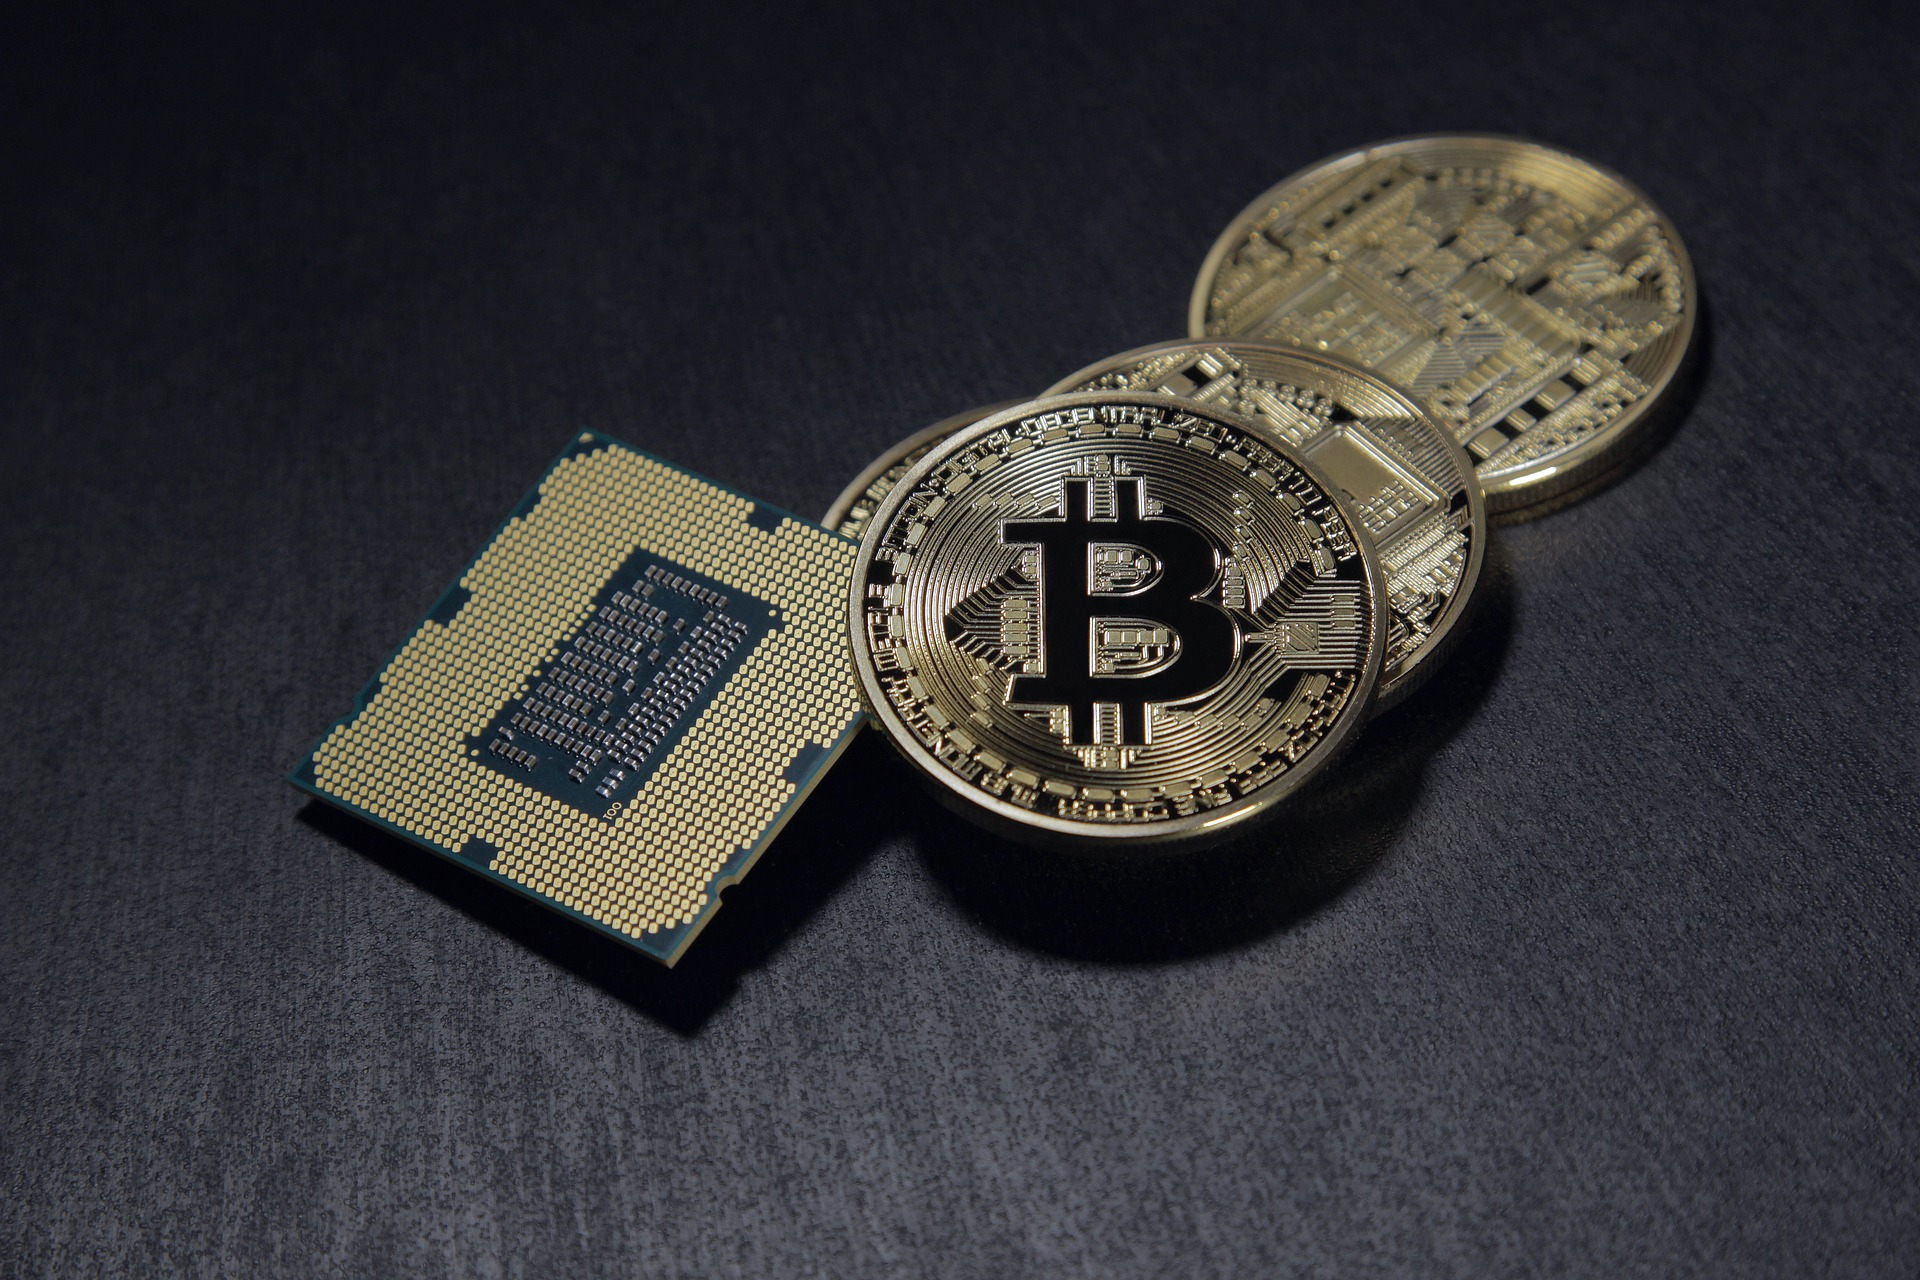 Intel Processor Manufacturer Invests in Crypto Assets via Coinbase Shares